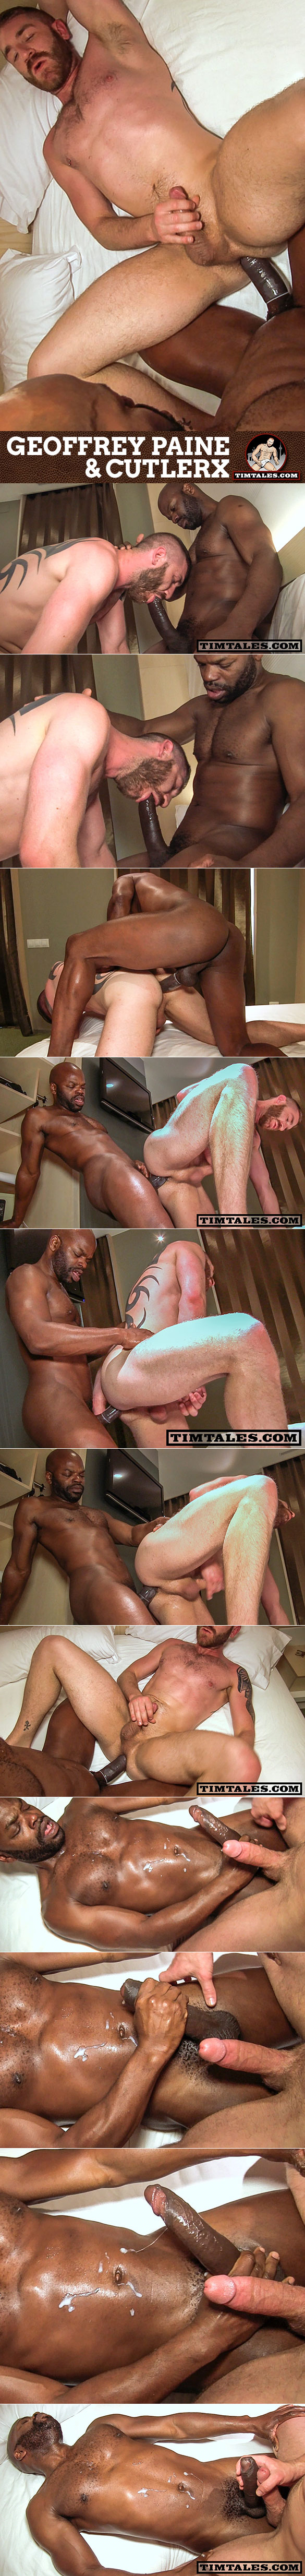 TimTales: CutlerX pounds Geoffrey Paine